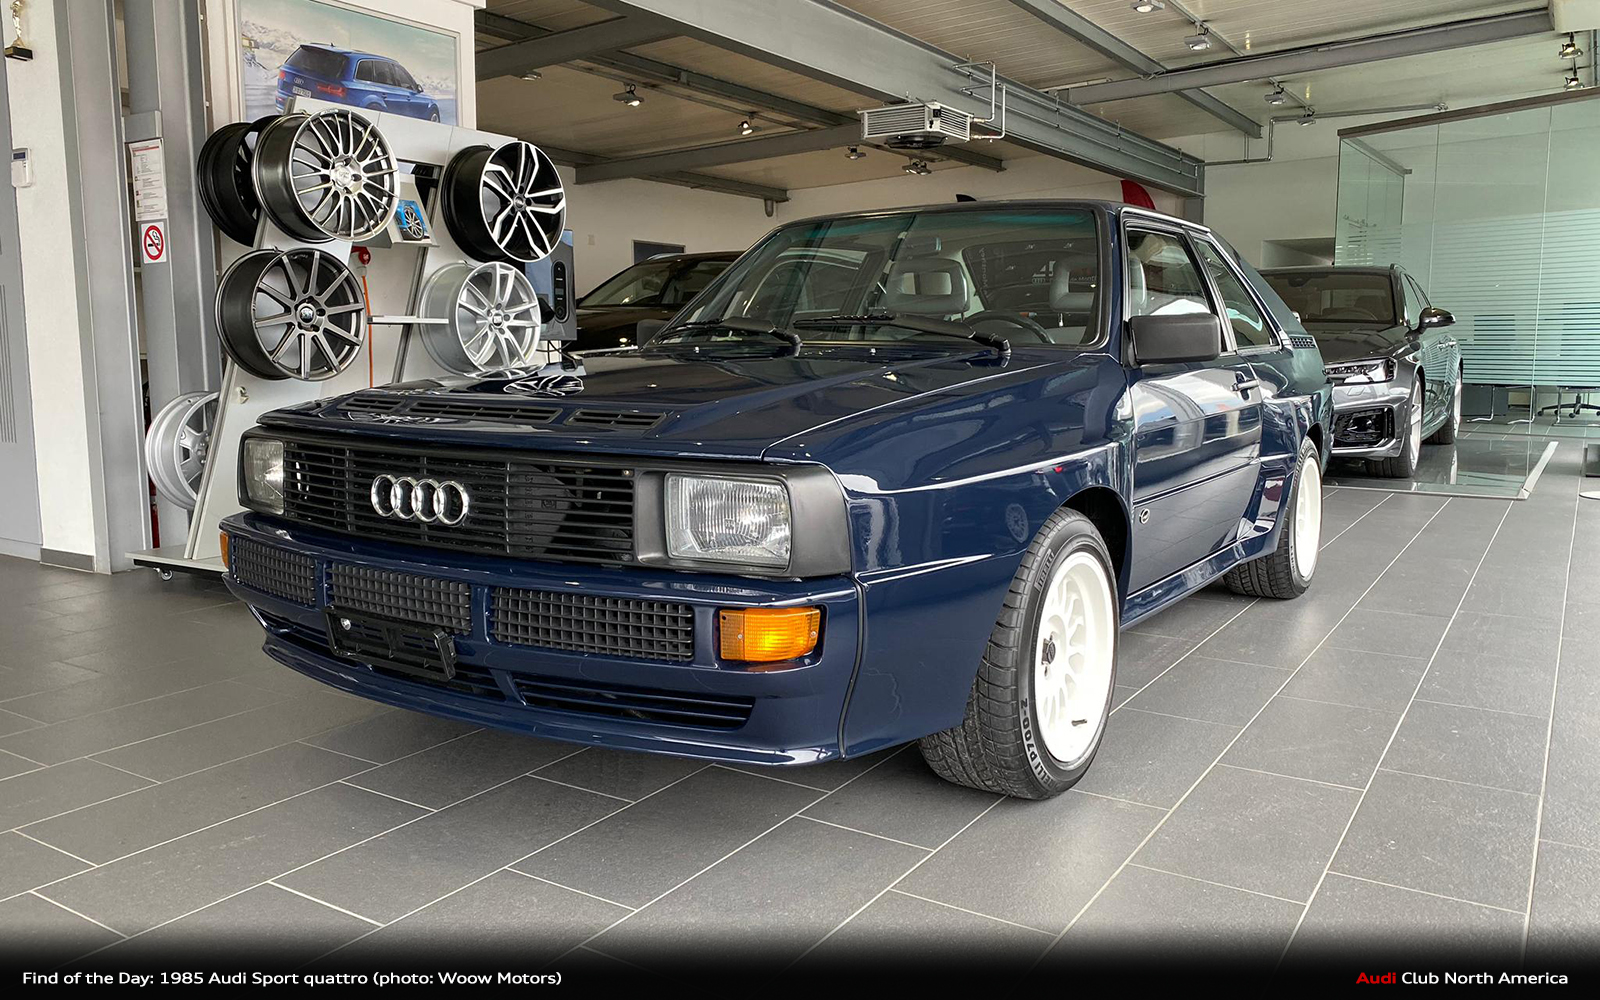 Cinco (Cylinders) de Mayo Find of the Day: 1985 Copenhagen Blue Audi Sport quattro